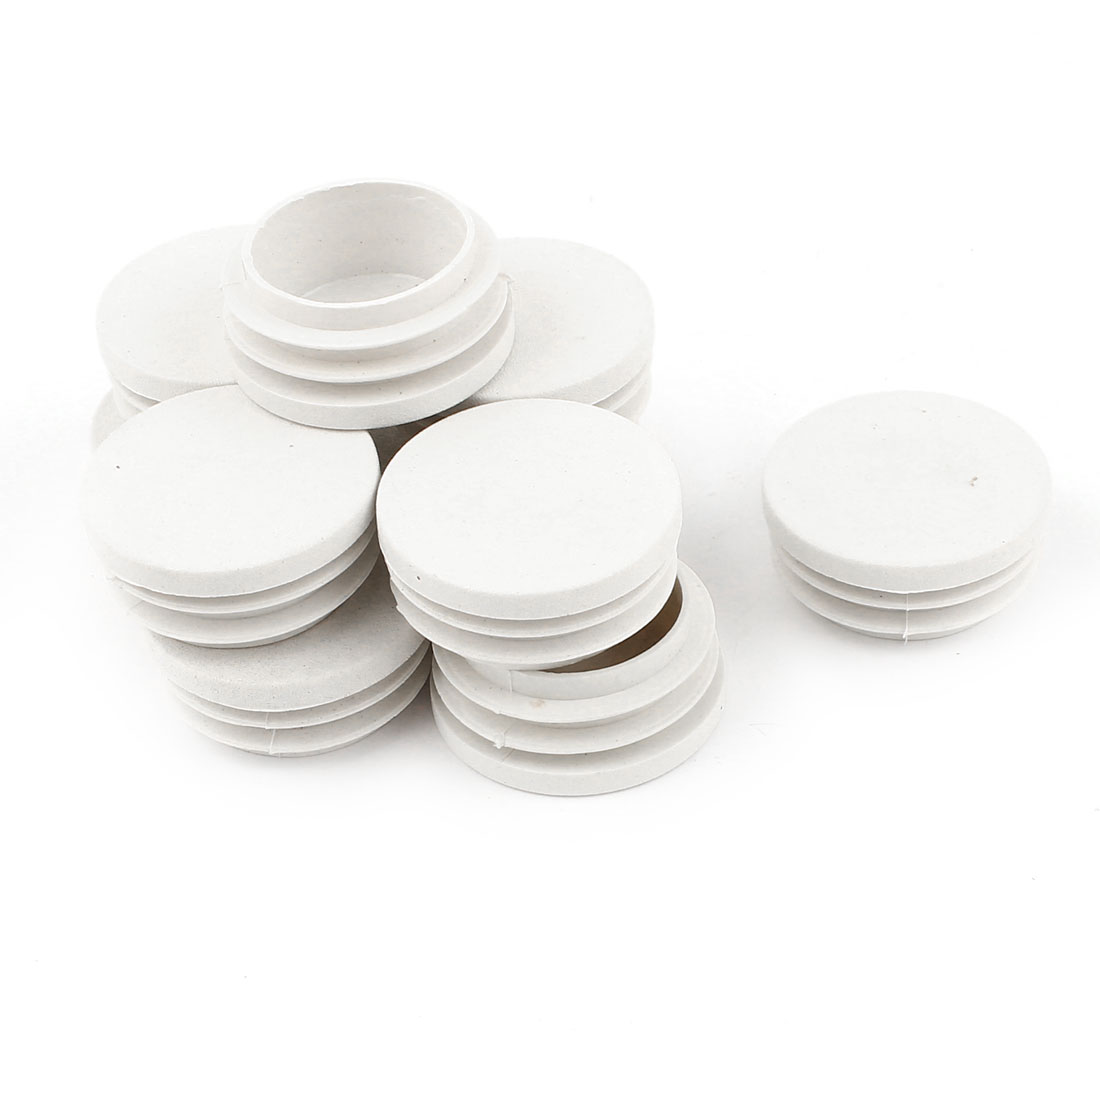 10 Pcs White Plastic 32mm Dia Round Tubing Tube Insert Caps Covers